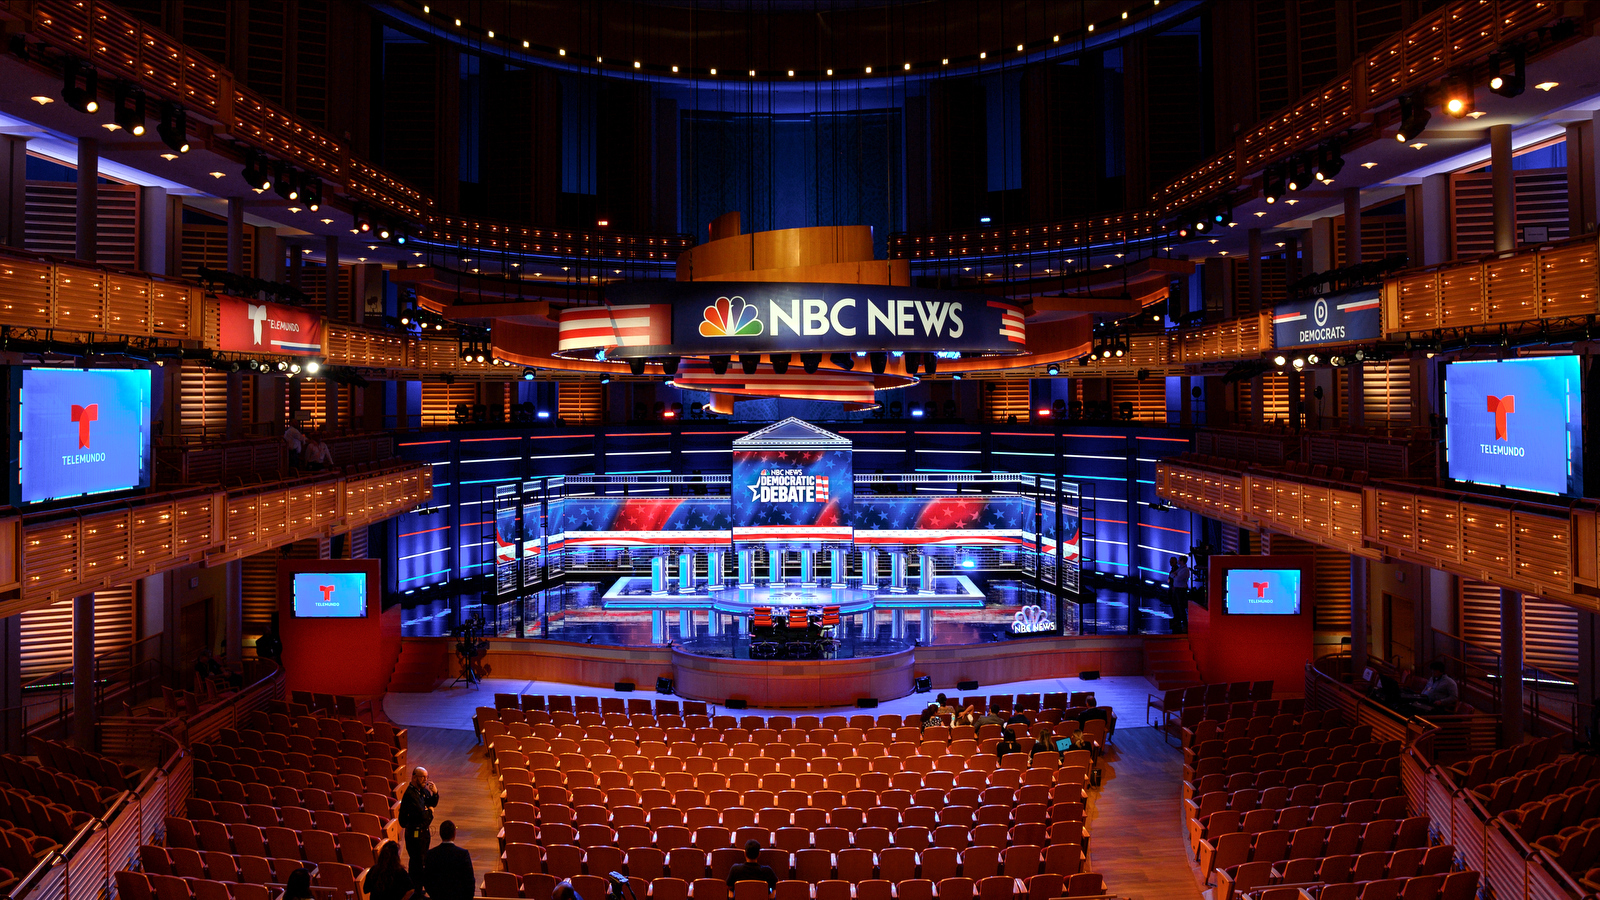 NCS_NBC-2020-Democratic-Primary-Debate_Stage-Design_008